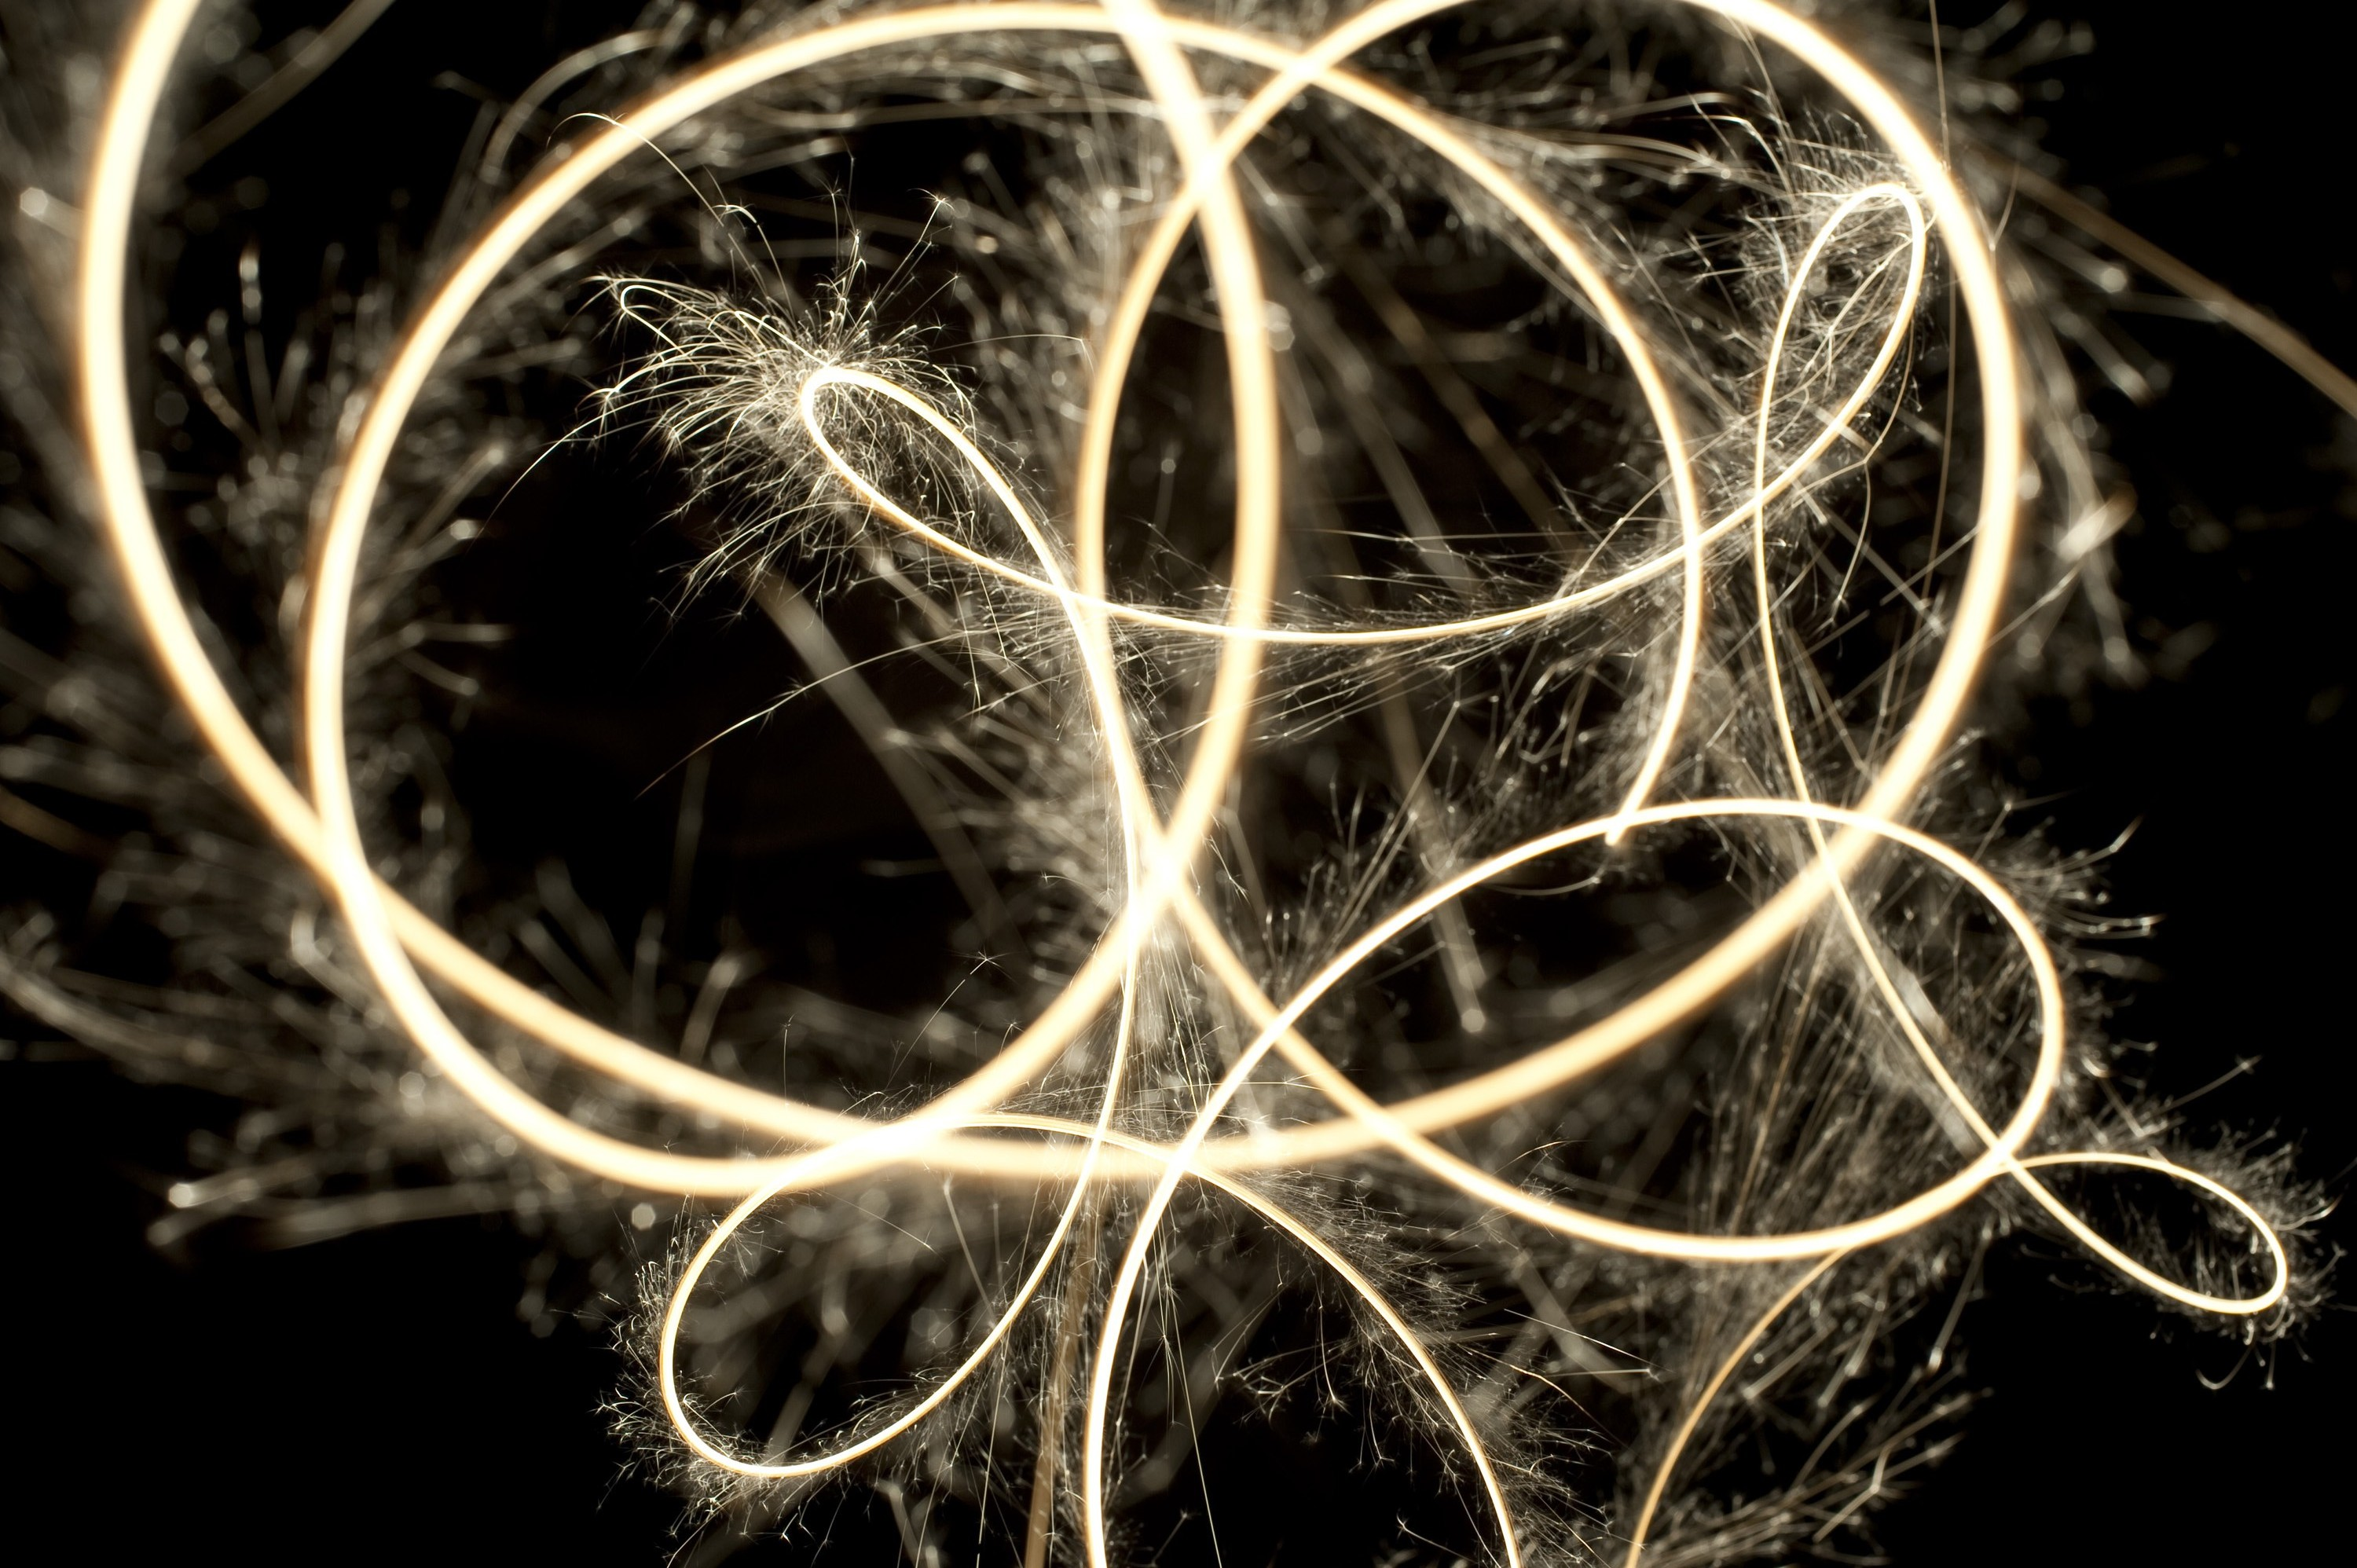 a sparkler trail plotting mathematical curves